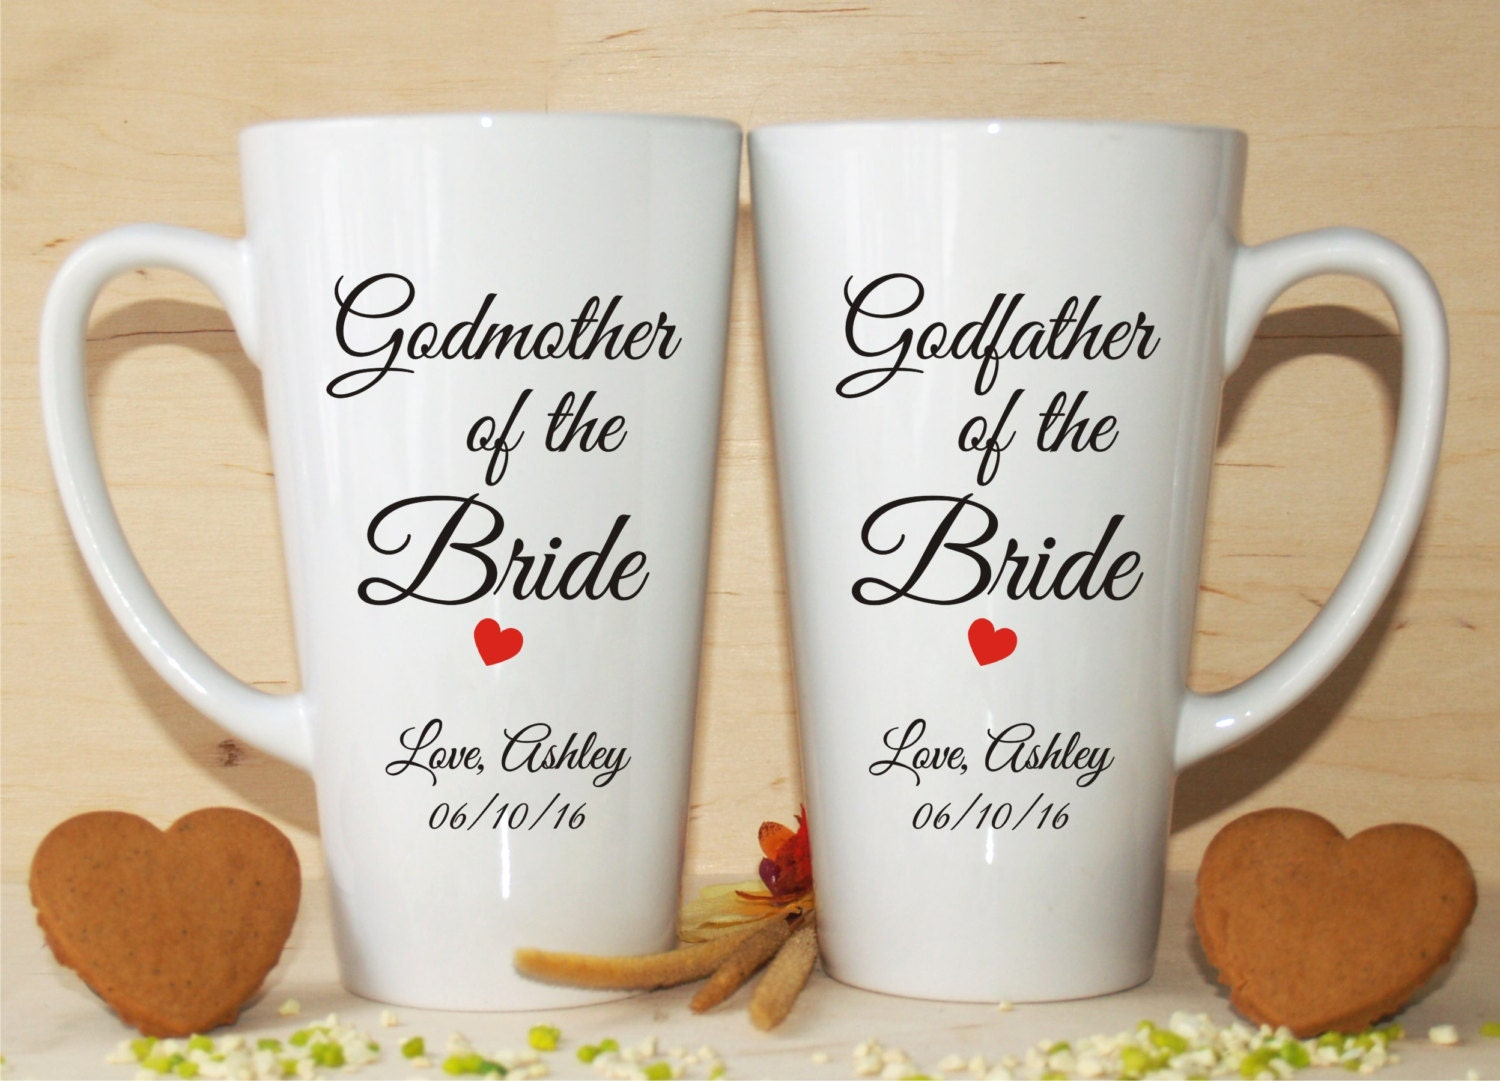 Wedding Gifts For Godparents : Godmother of the bride gift-Godfather of the bride